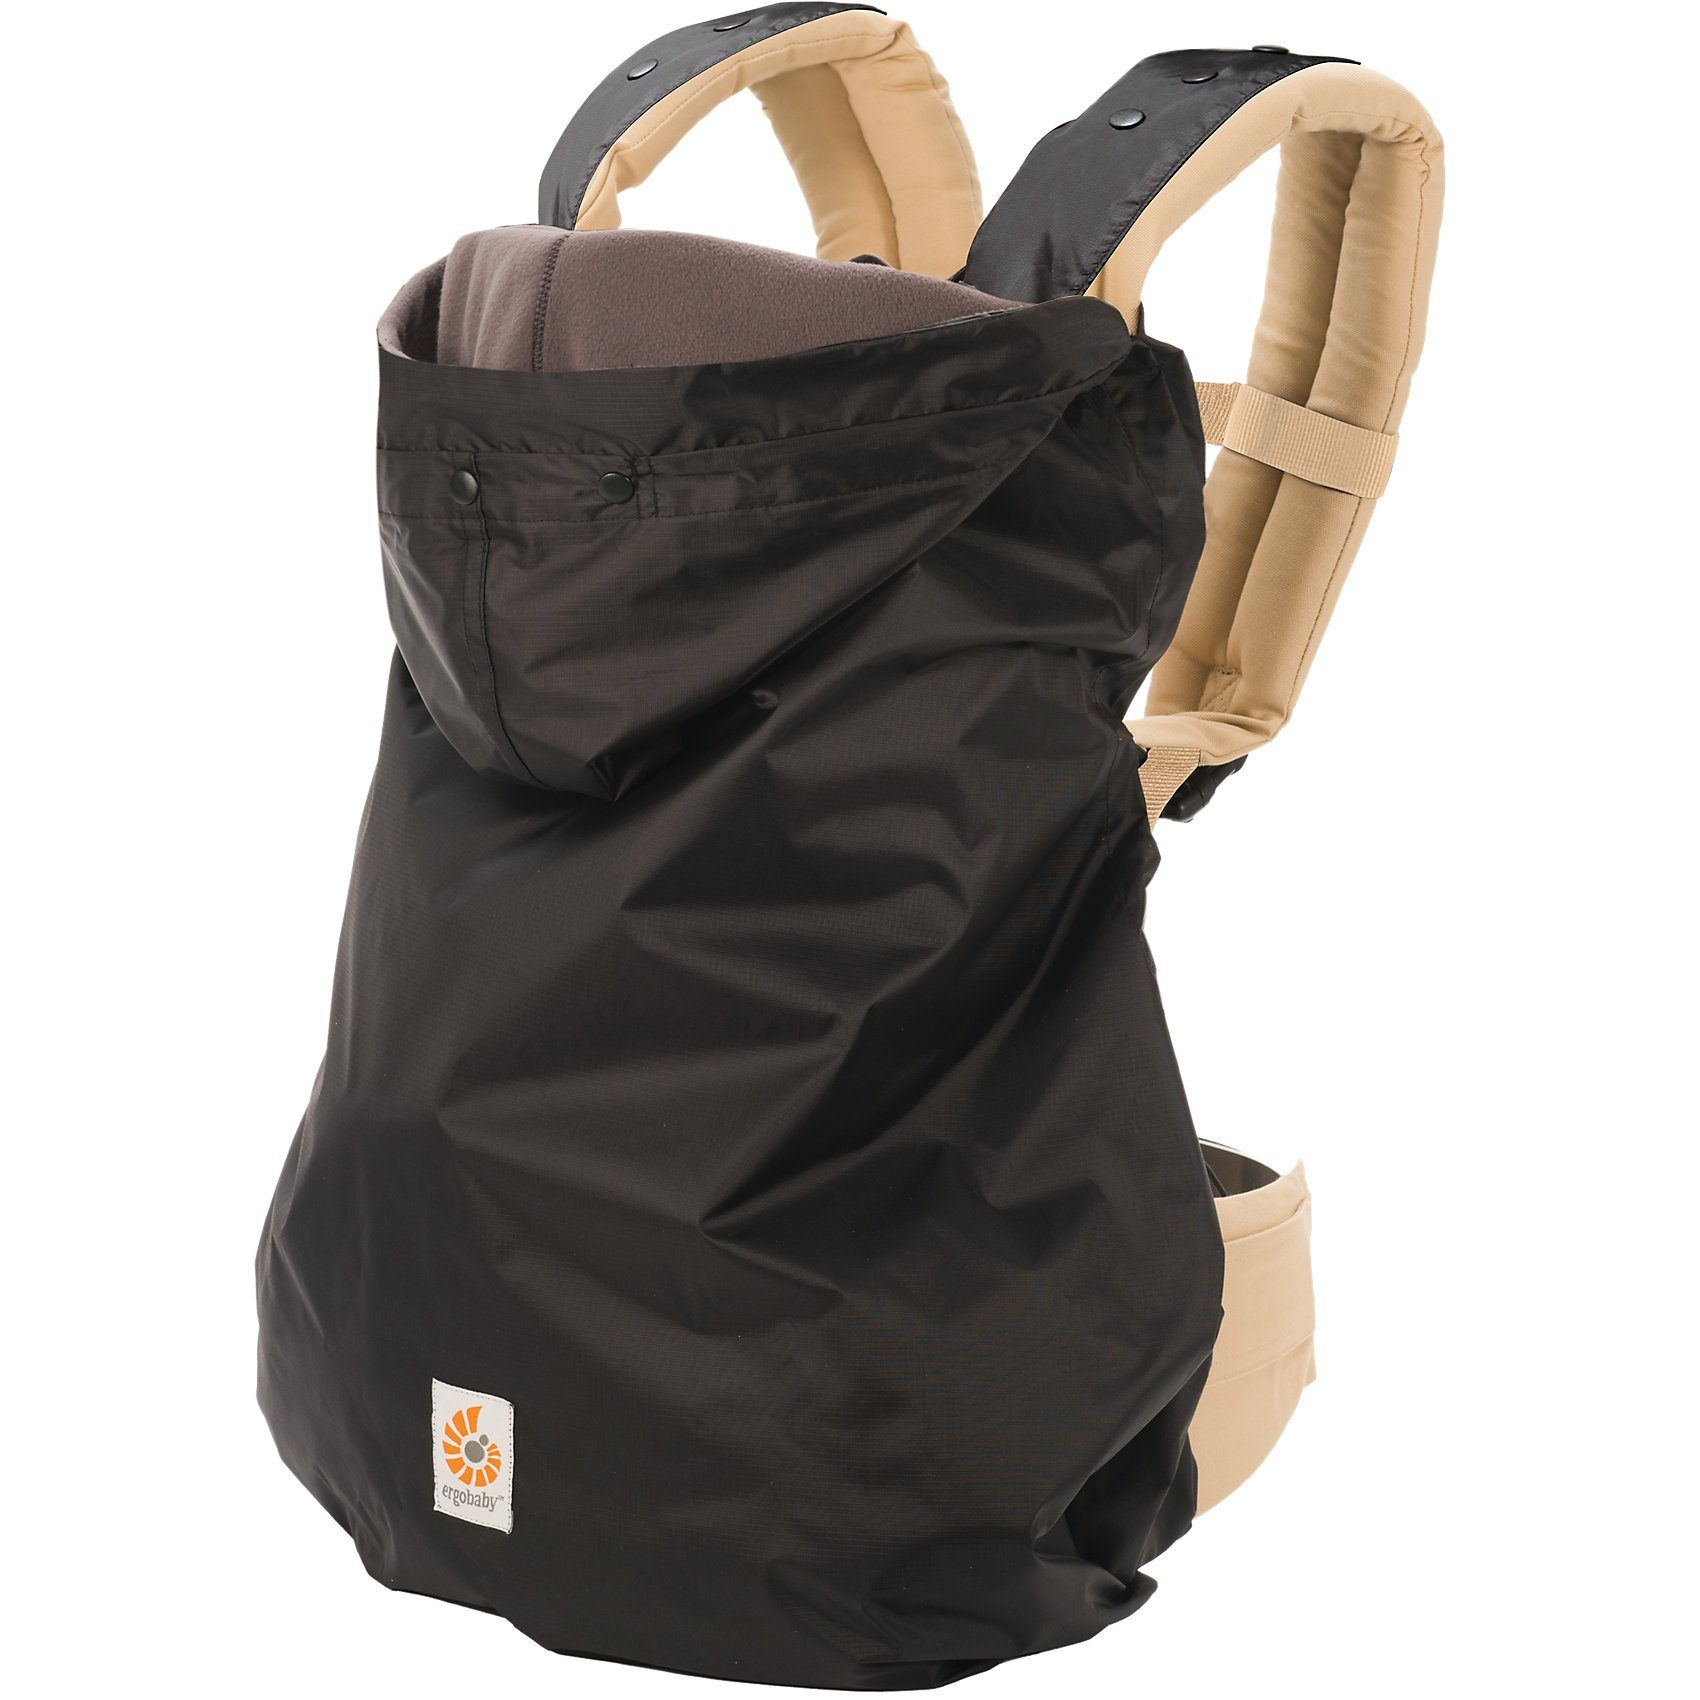 ERGObaby Winter-Cover 2in1, Black/Charcoal